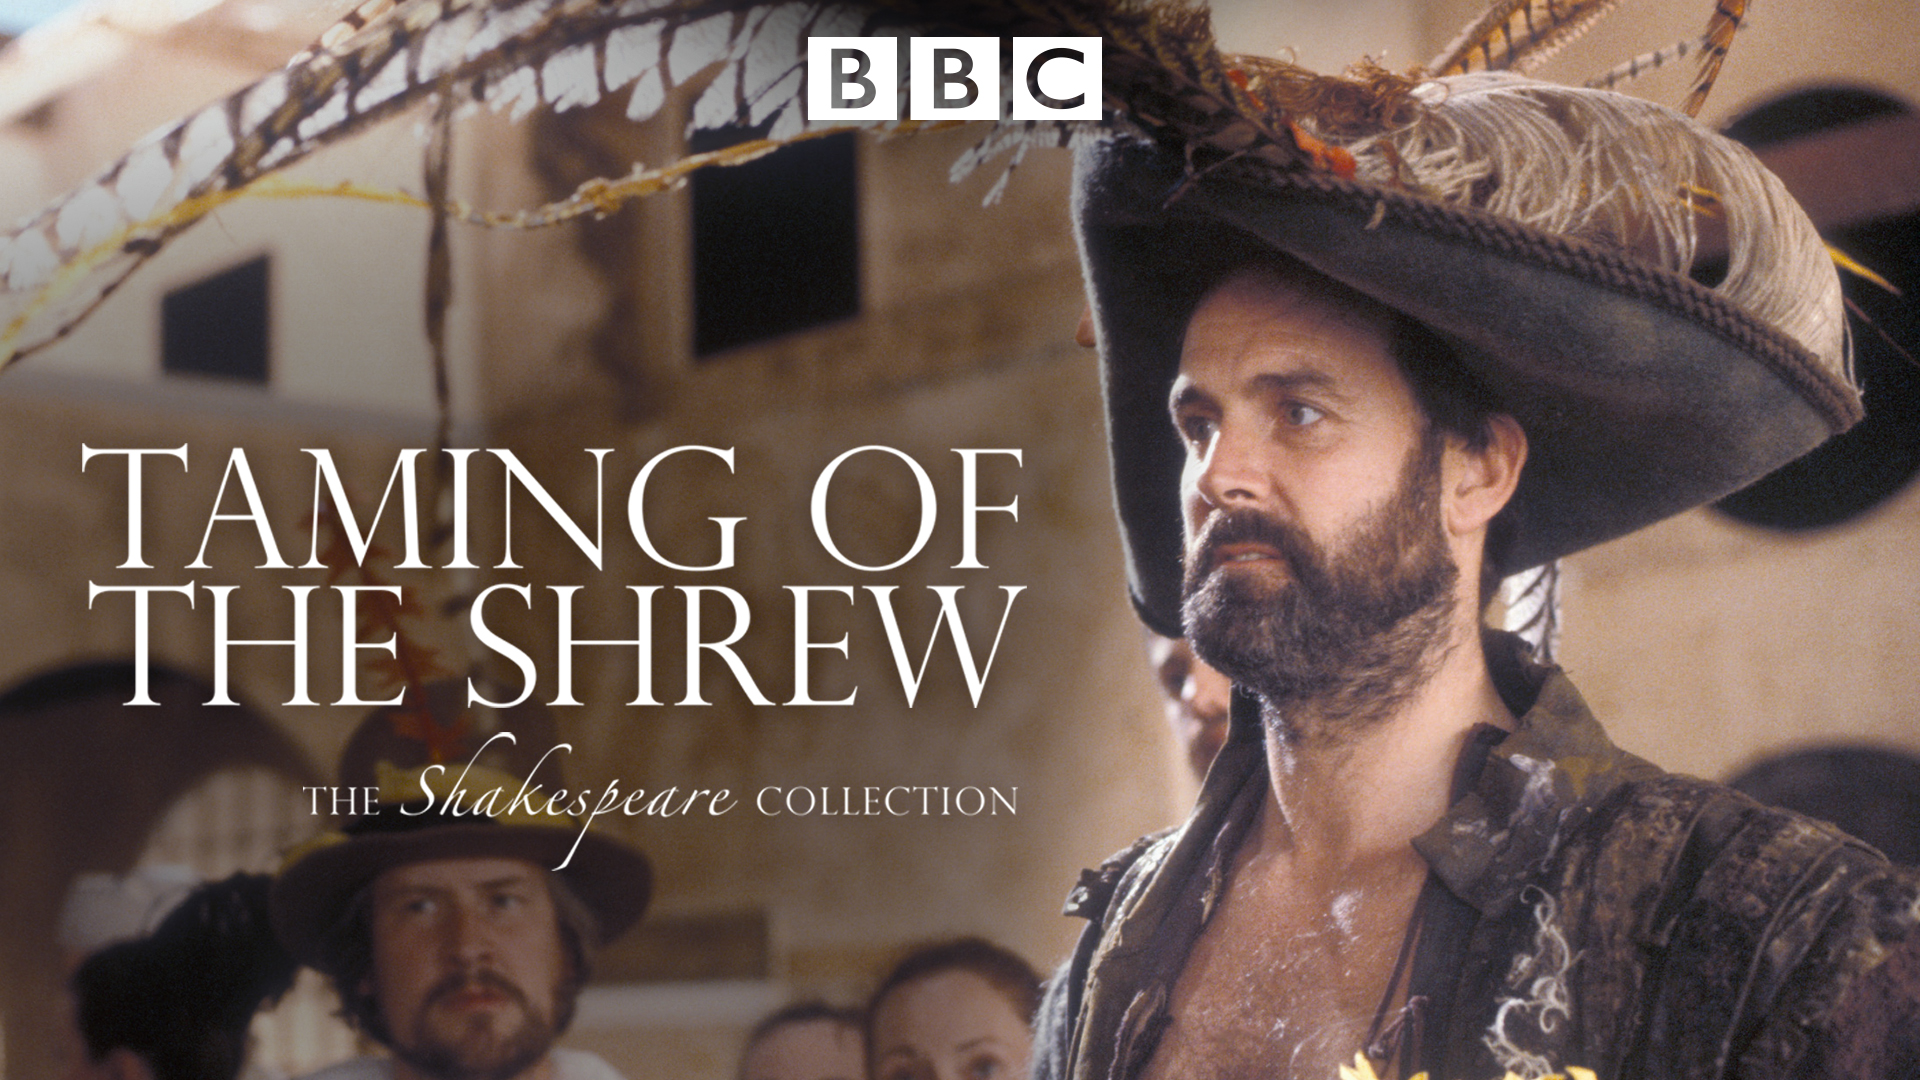 BBC Television Shakespeare: Taming Of The Shrew